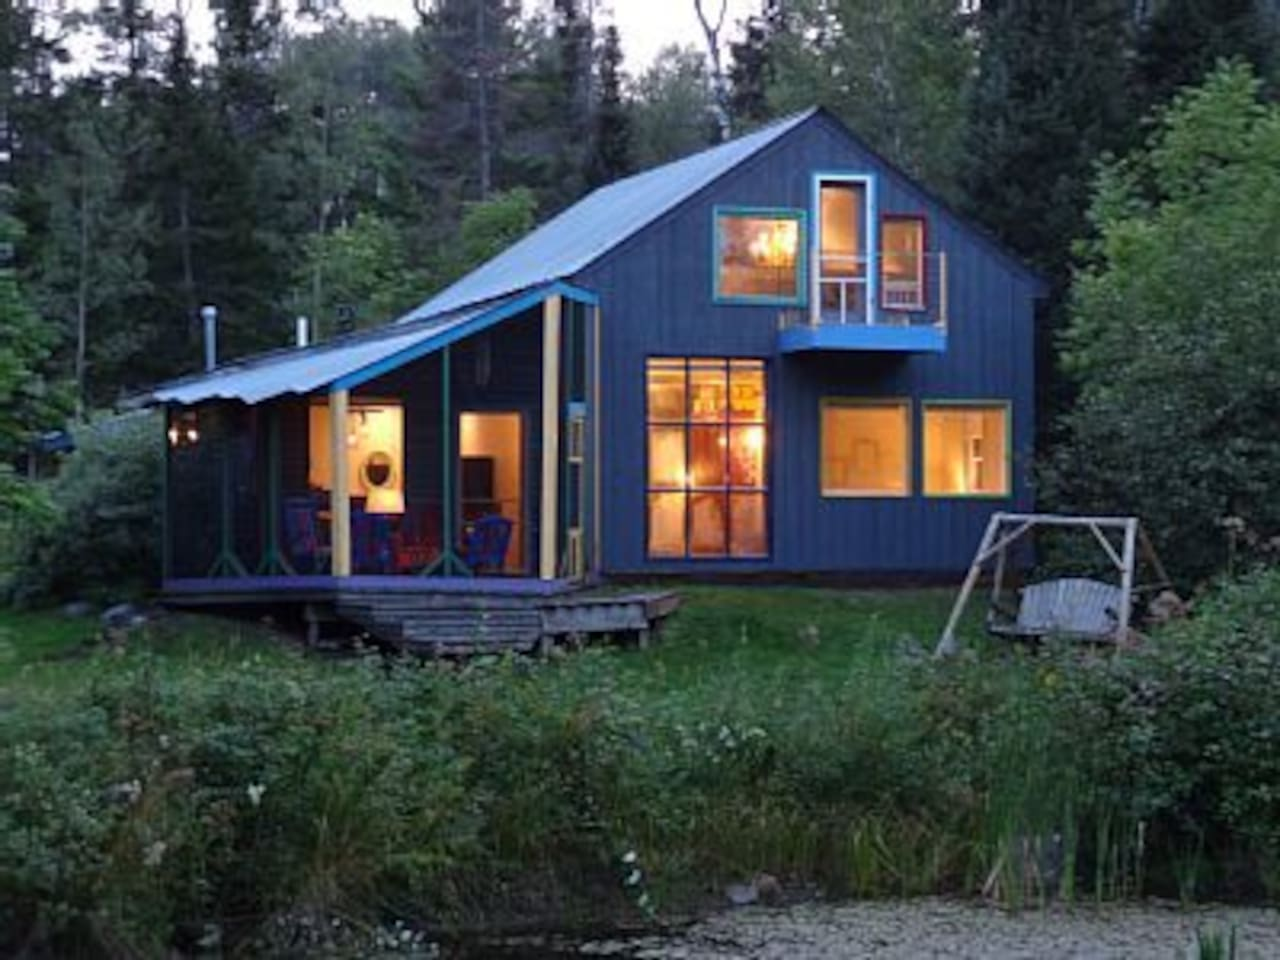 wisconsin is places northwoodsy cozy by in stay lodging that plethora a should state re live or feel cottages lucky mn cabins for must to of charming img and minnesota duluth you surrounded if rent